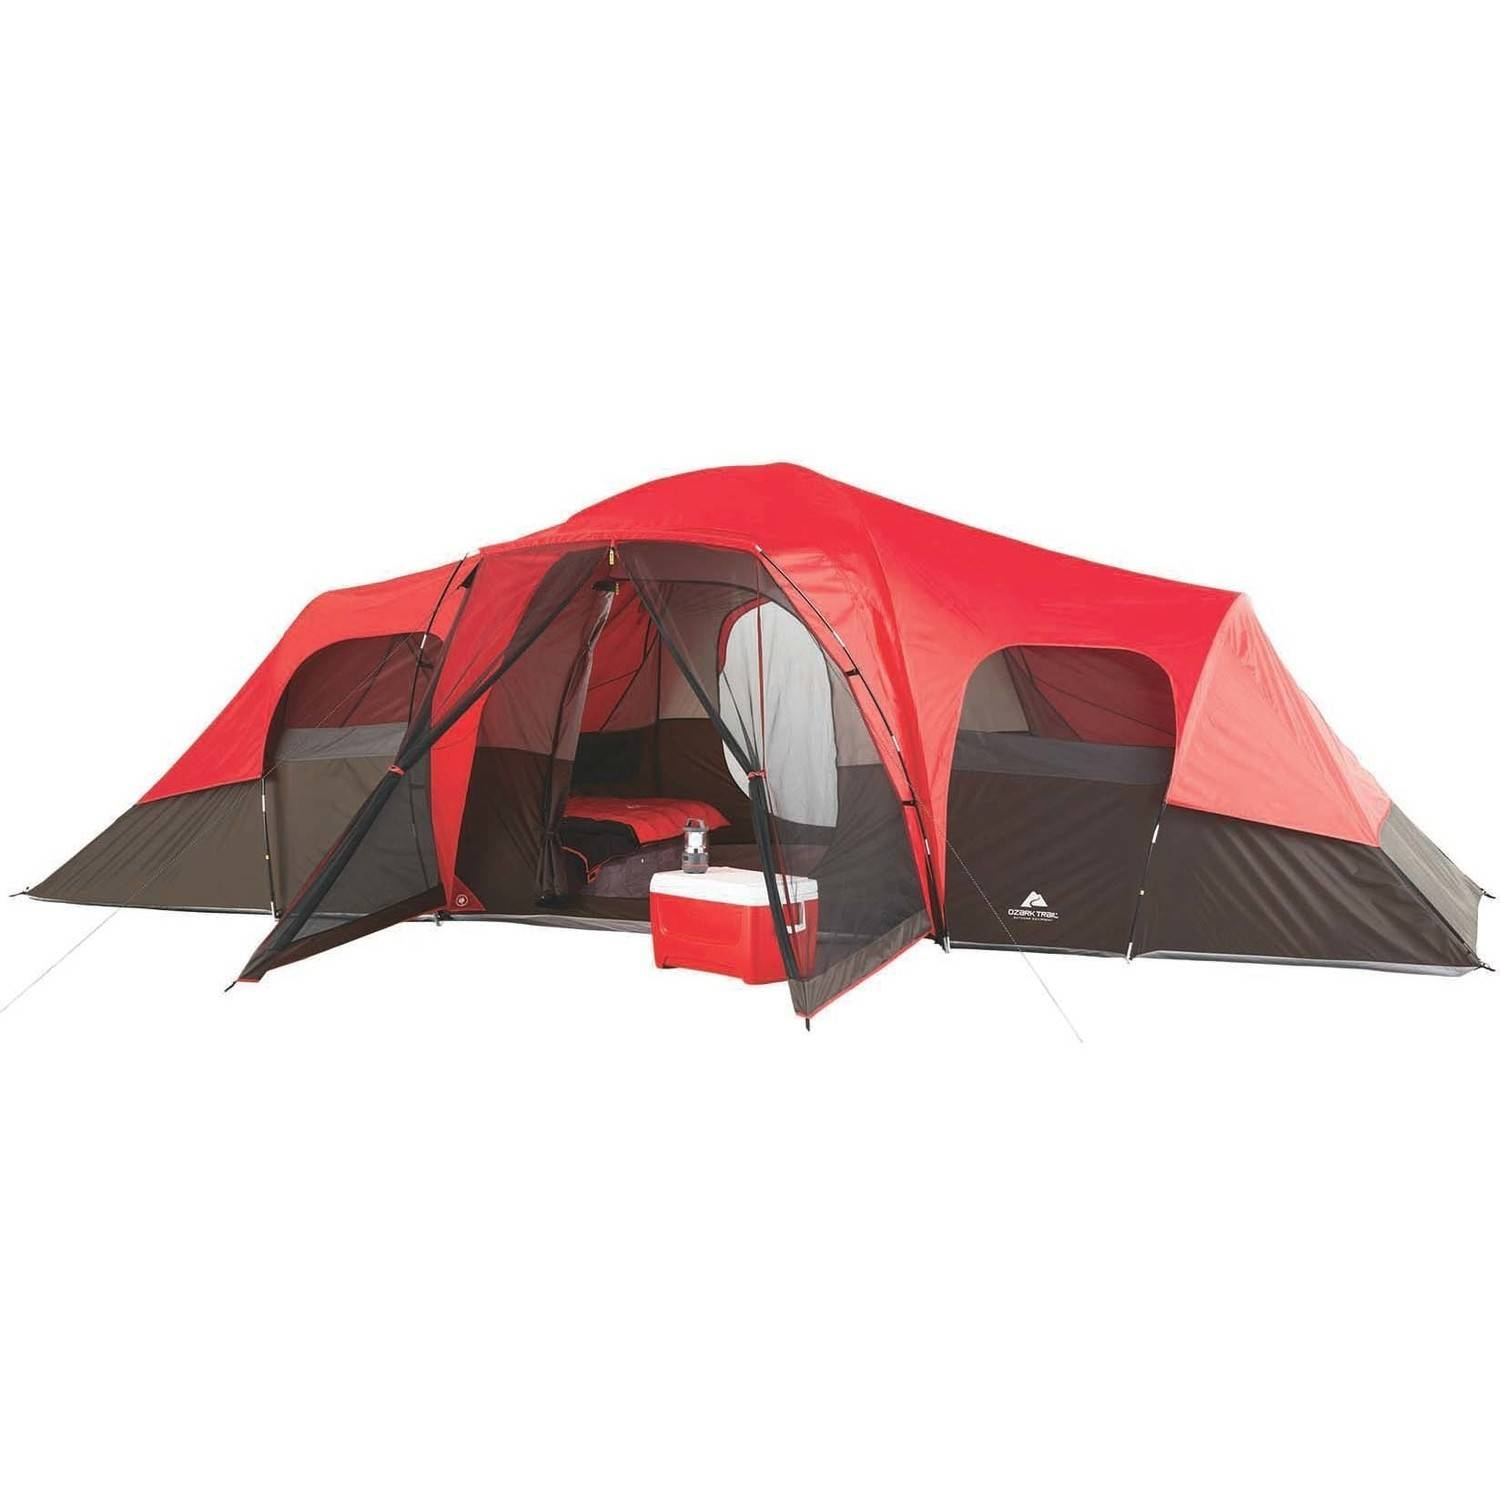 Ozark Trail 10-Person Family Tent  sc 1 st  Walmart.com & Ozark Trail 10-Person Family Tent - Walmart.com